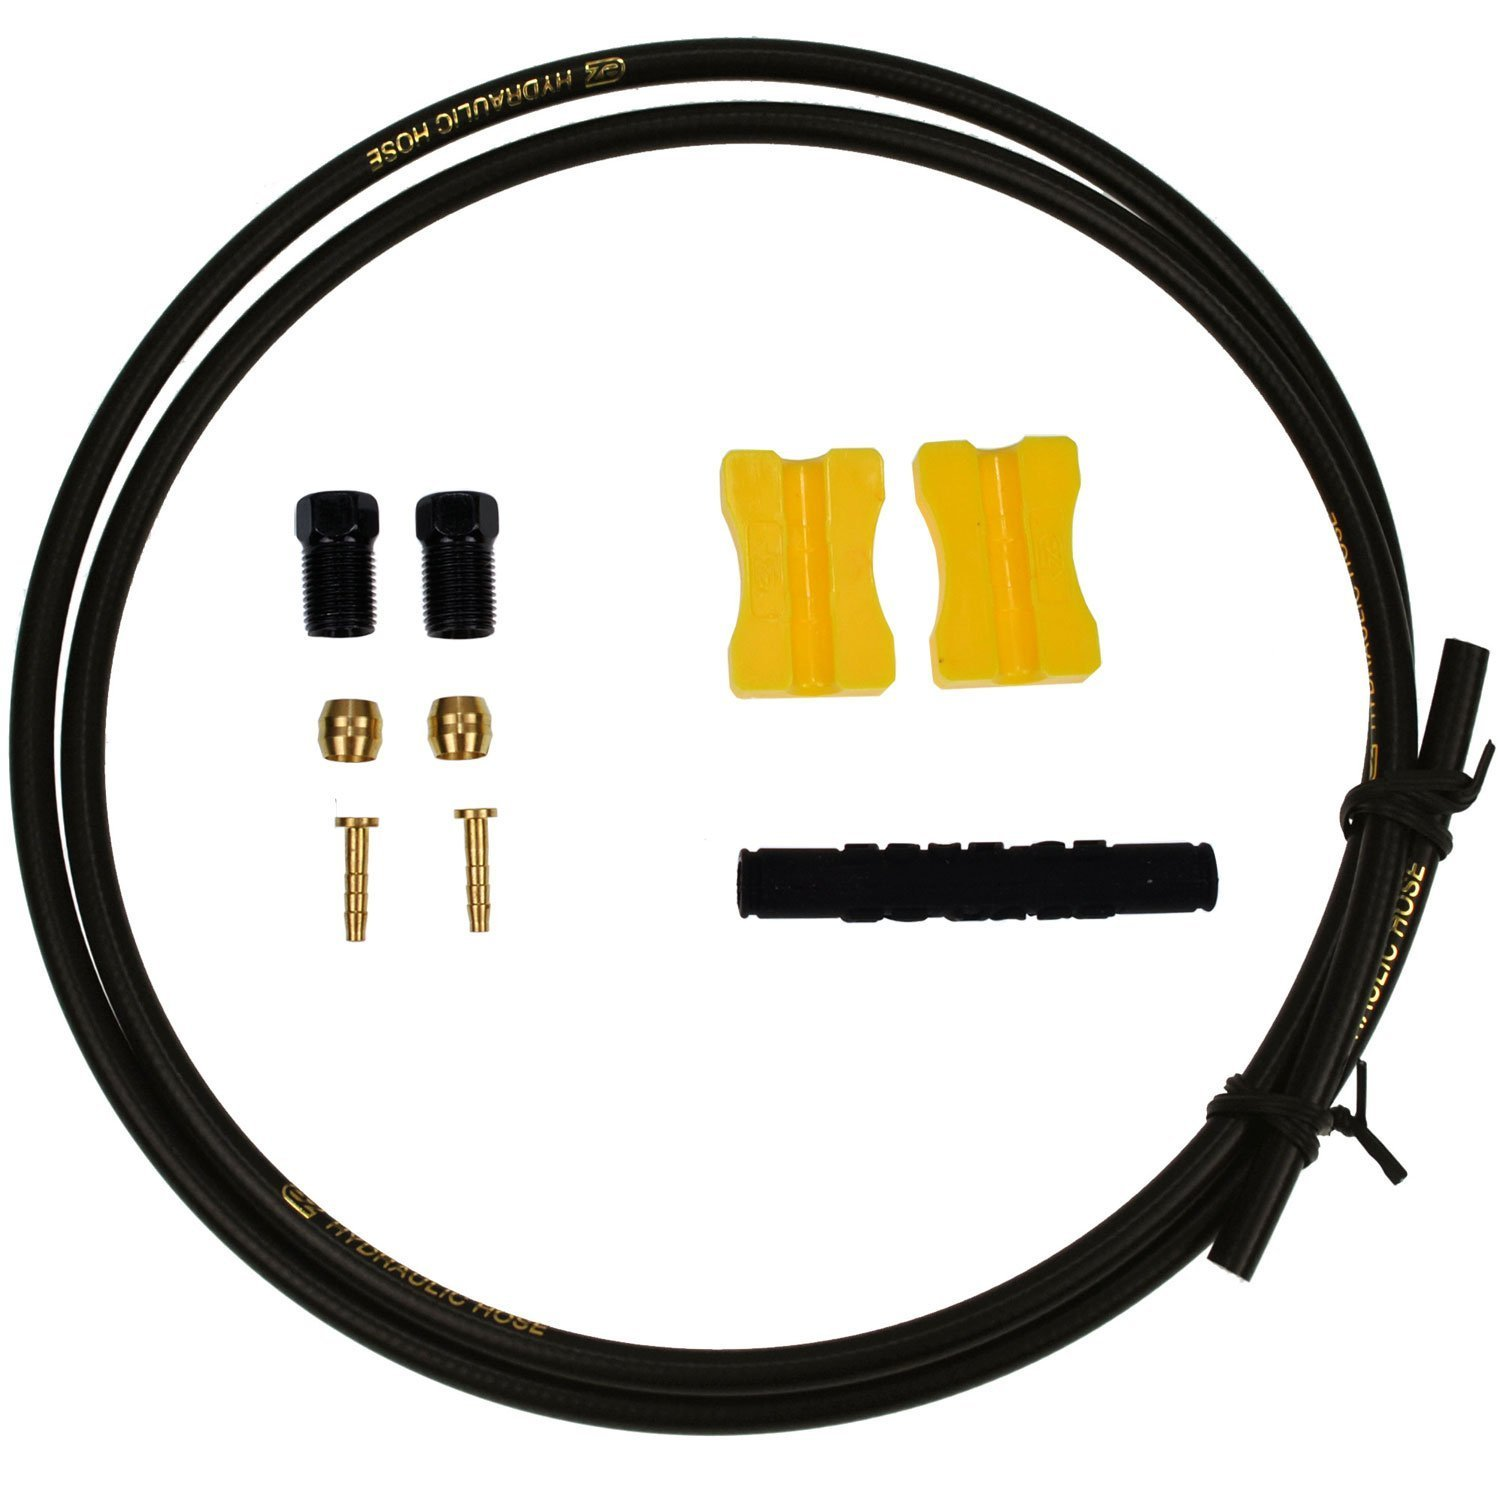 Cheap Sm Bh59 Brake Hose, find Sm Bh59 Brake Hose deals on line at